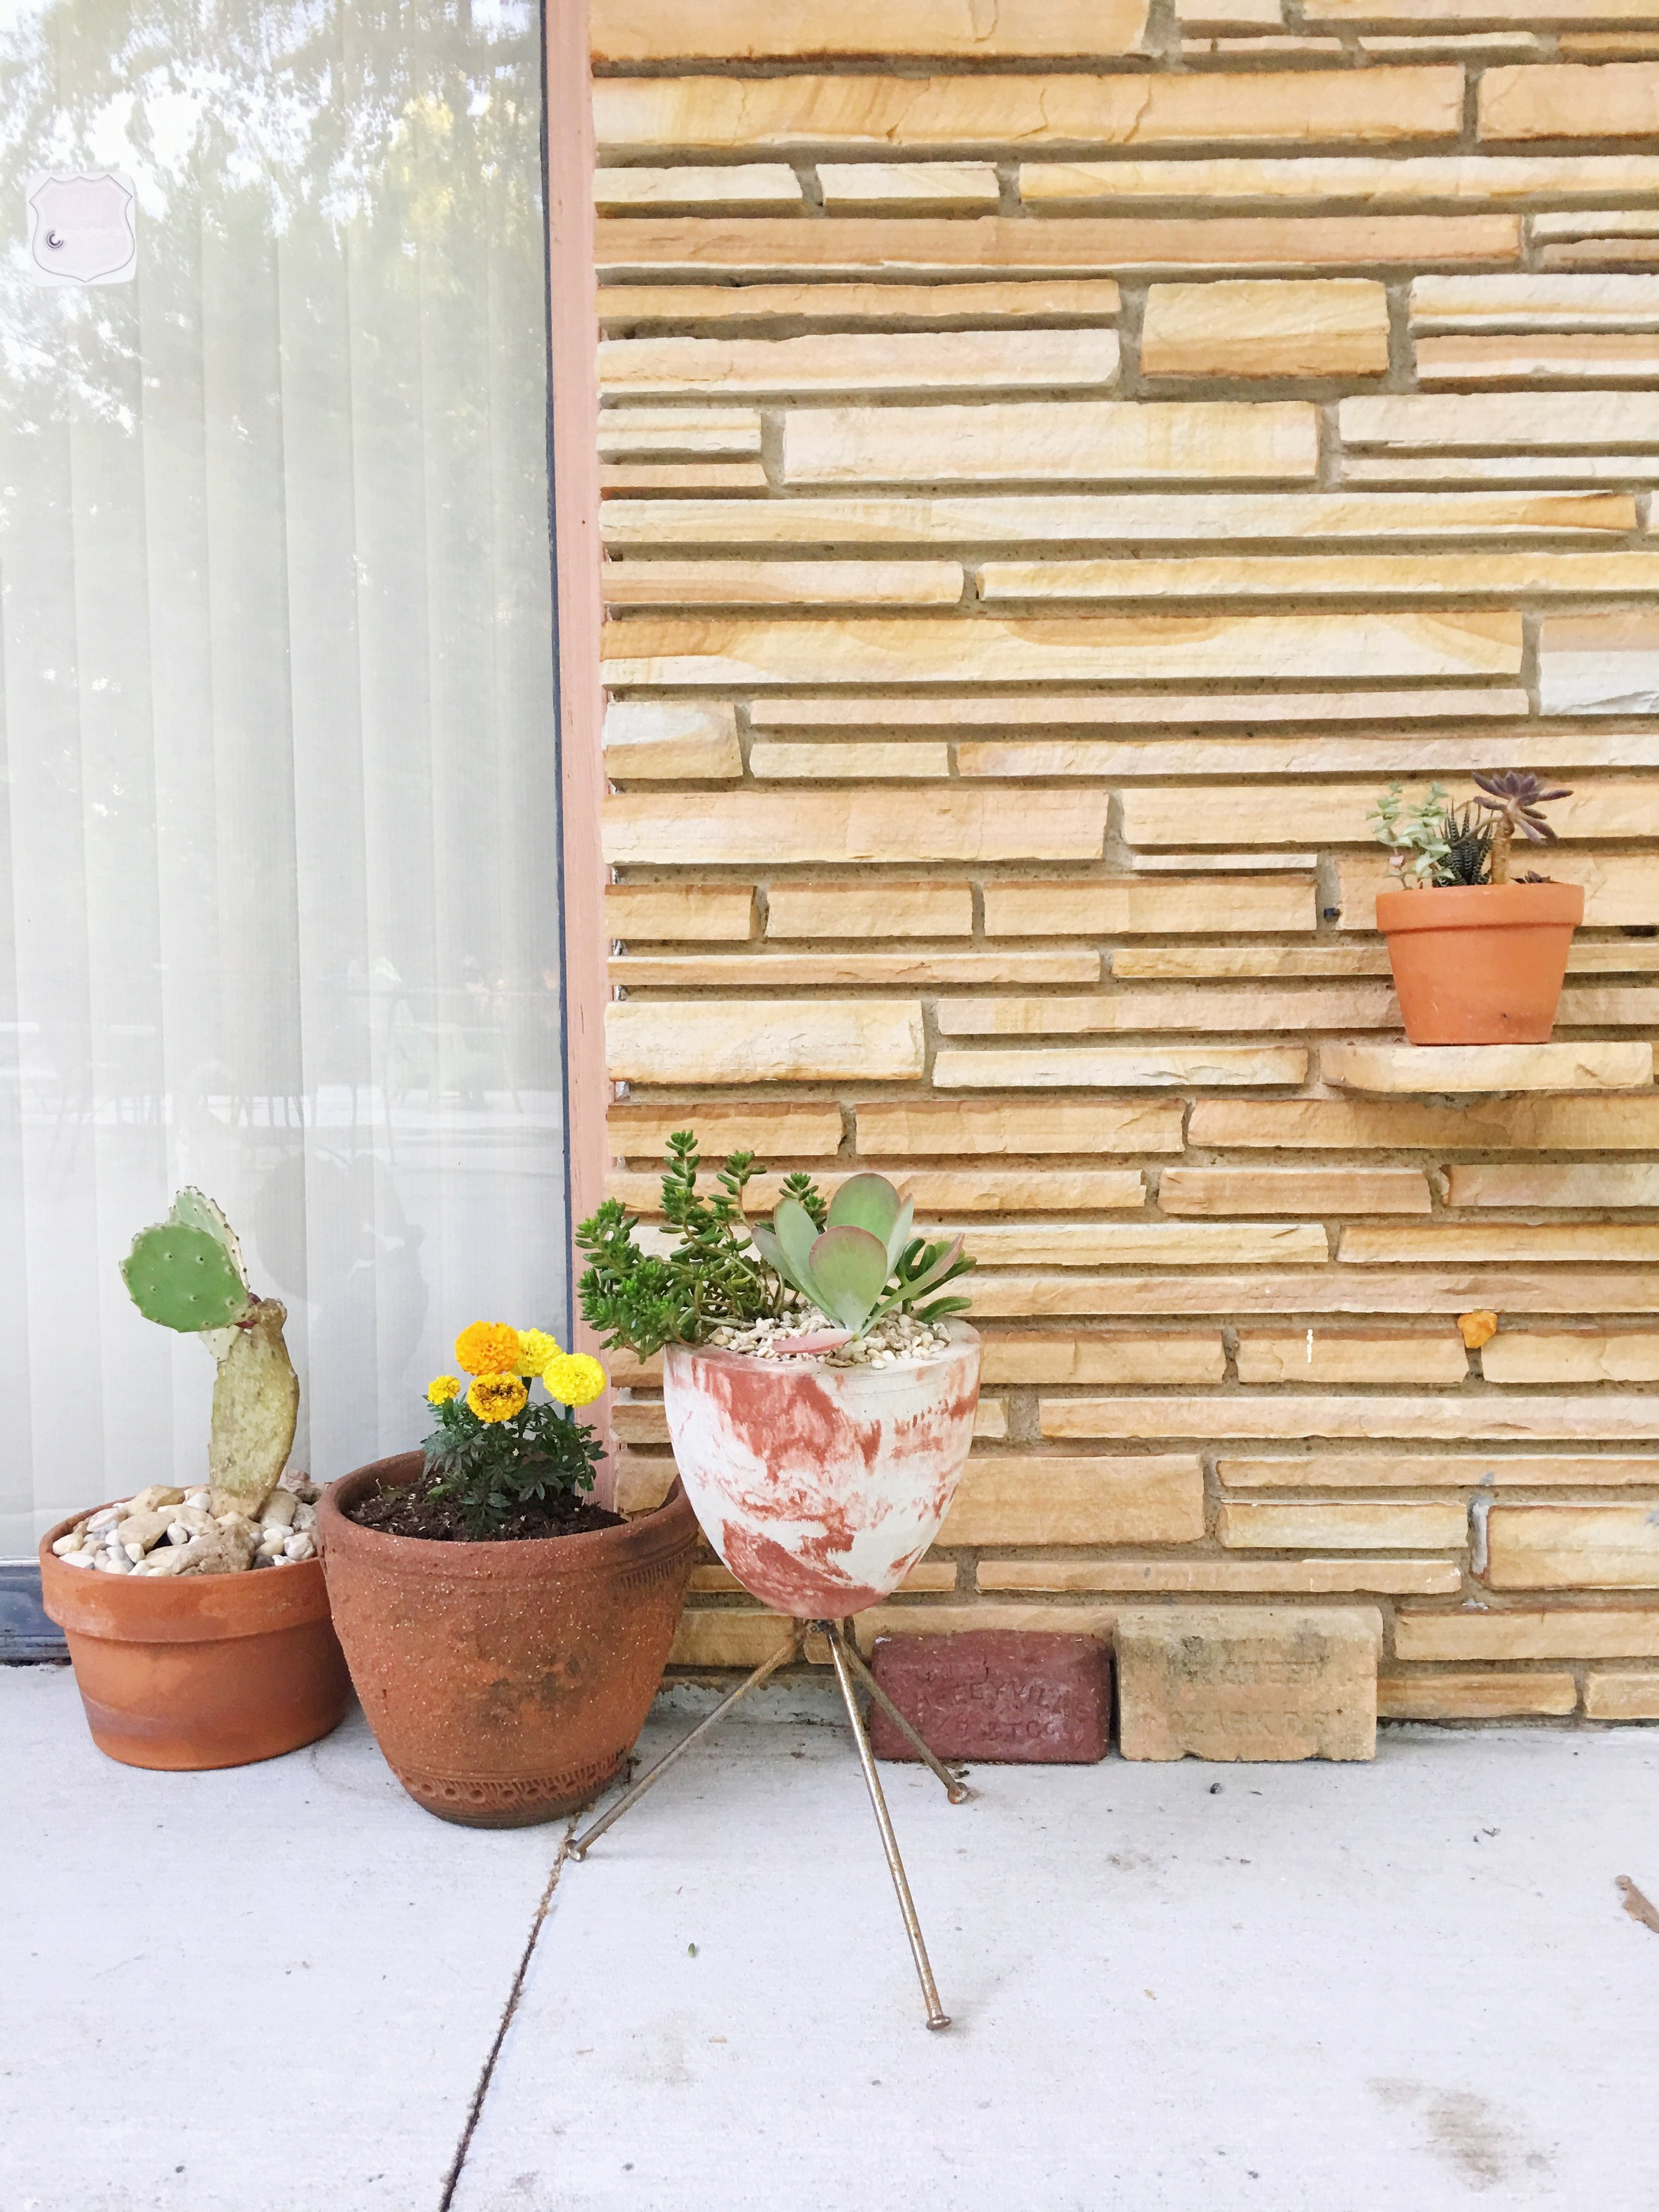 Loving the plain and simple terracotta pots plus handmade marbled concrete bullet planters by Tulsa's Atomic Studio.